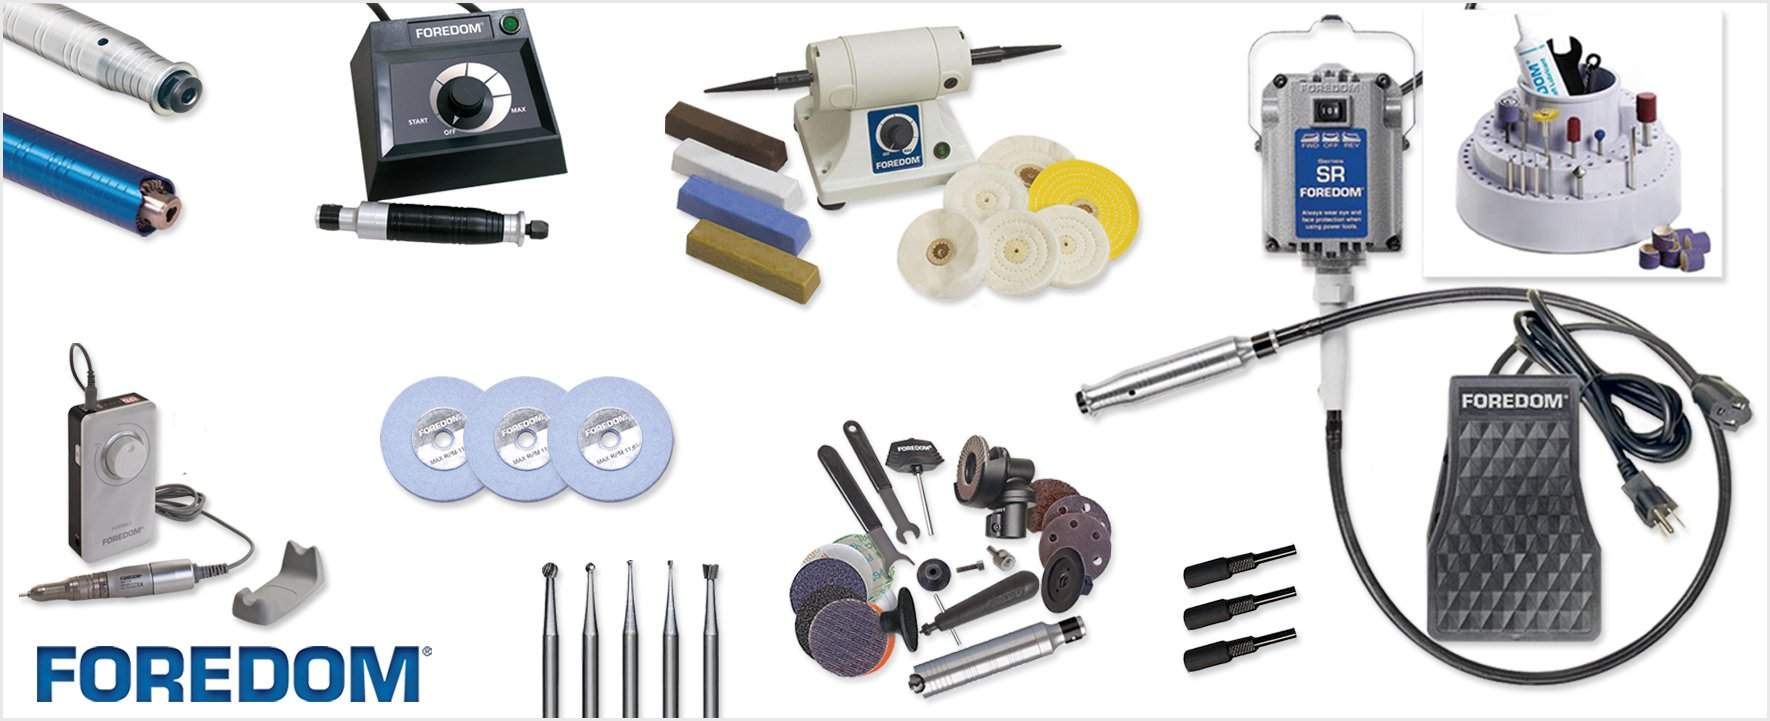 Jewelry Tool Supplies | PMCSuplies.com - Jewelry Tools | PMC Supplies